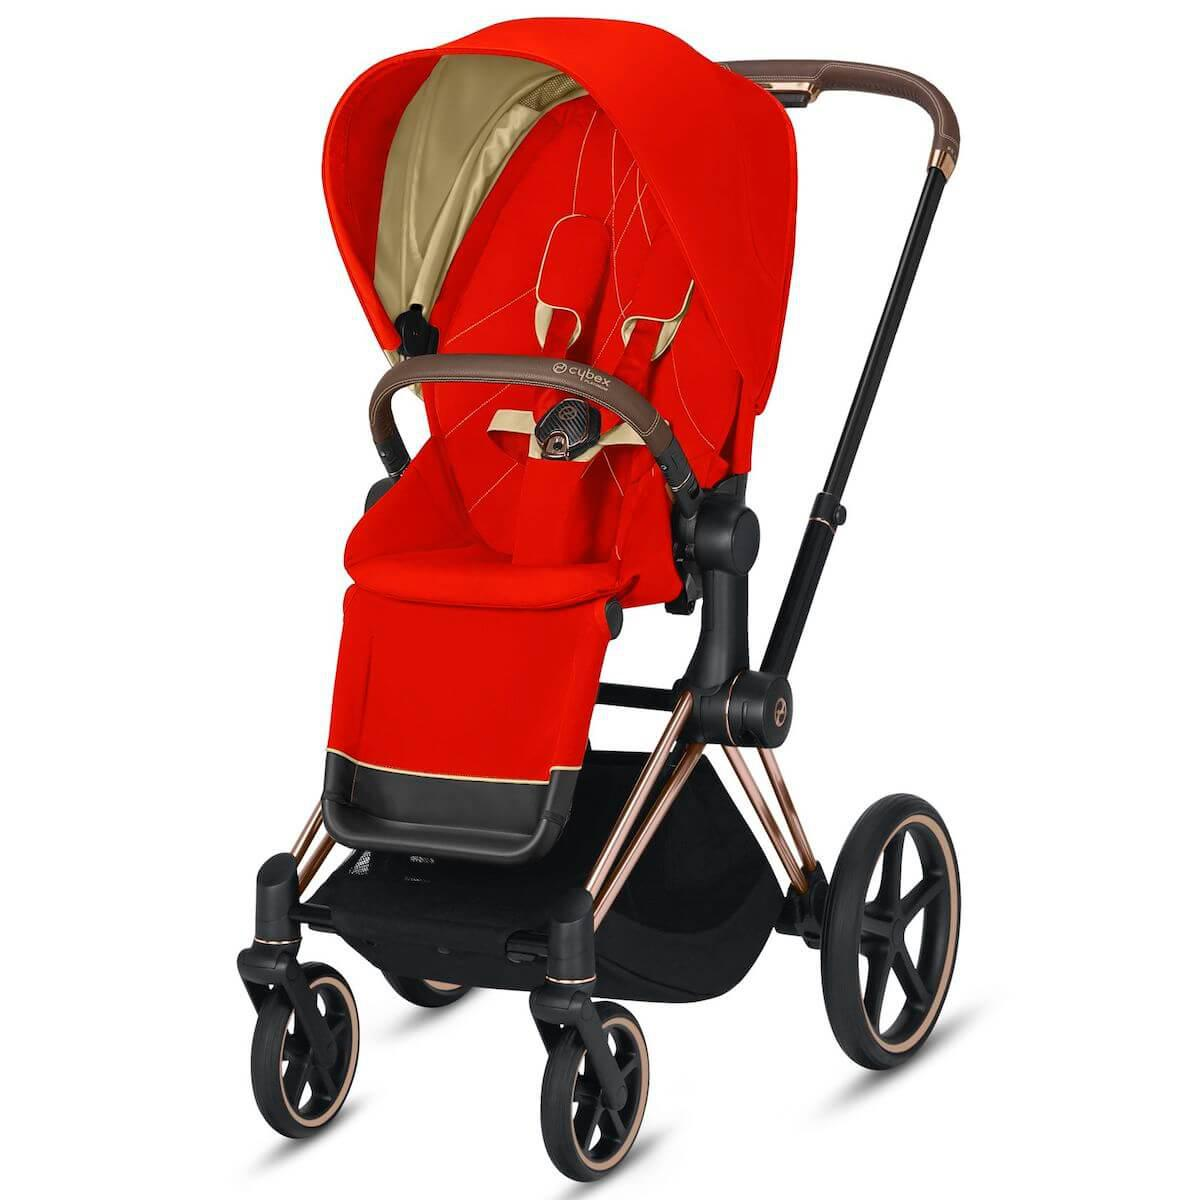 Assise-habillage poussette PRIAM Cybex Autumn Gold-burnt red